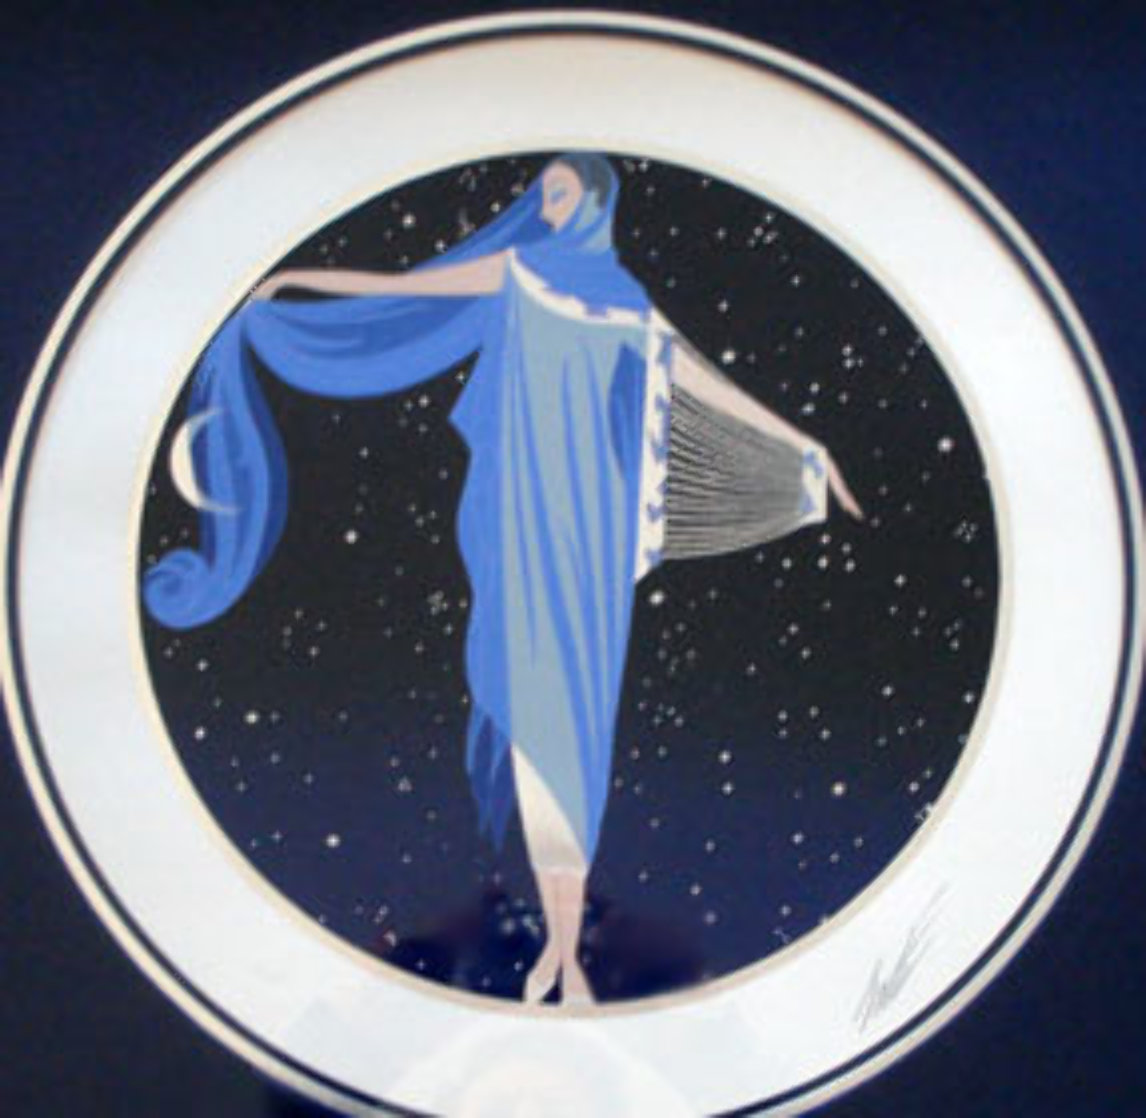 Sunrise/Moonglow Suite of 2 1984 Limited Edition Print by  Erte